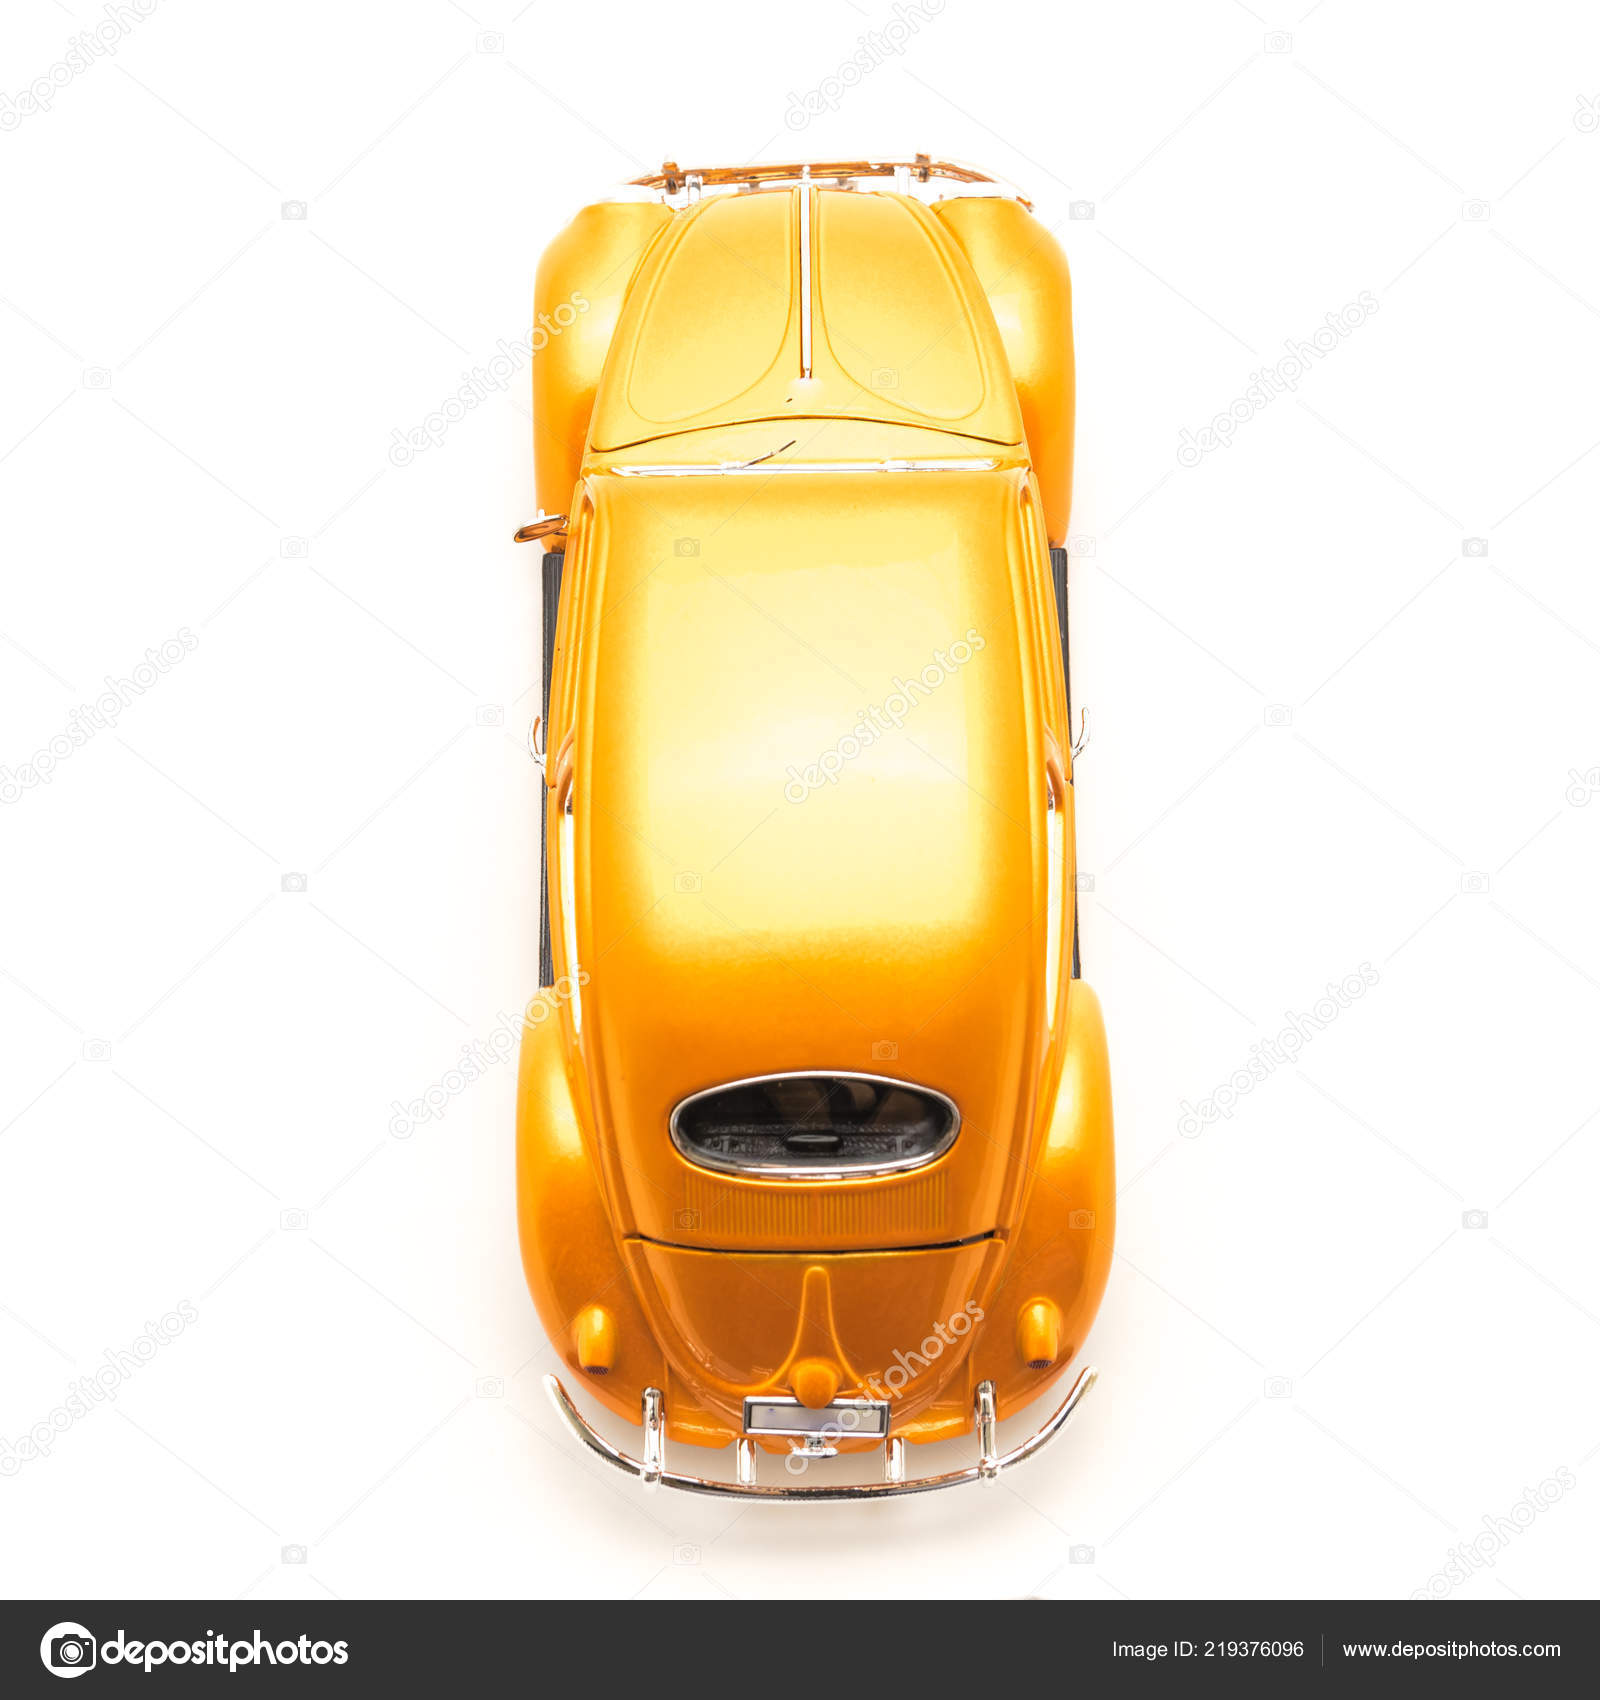 Studio Shot Top View Orange Toy Car Isolated White Background